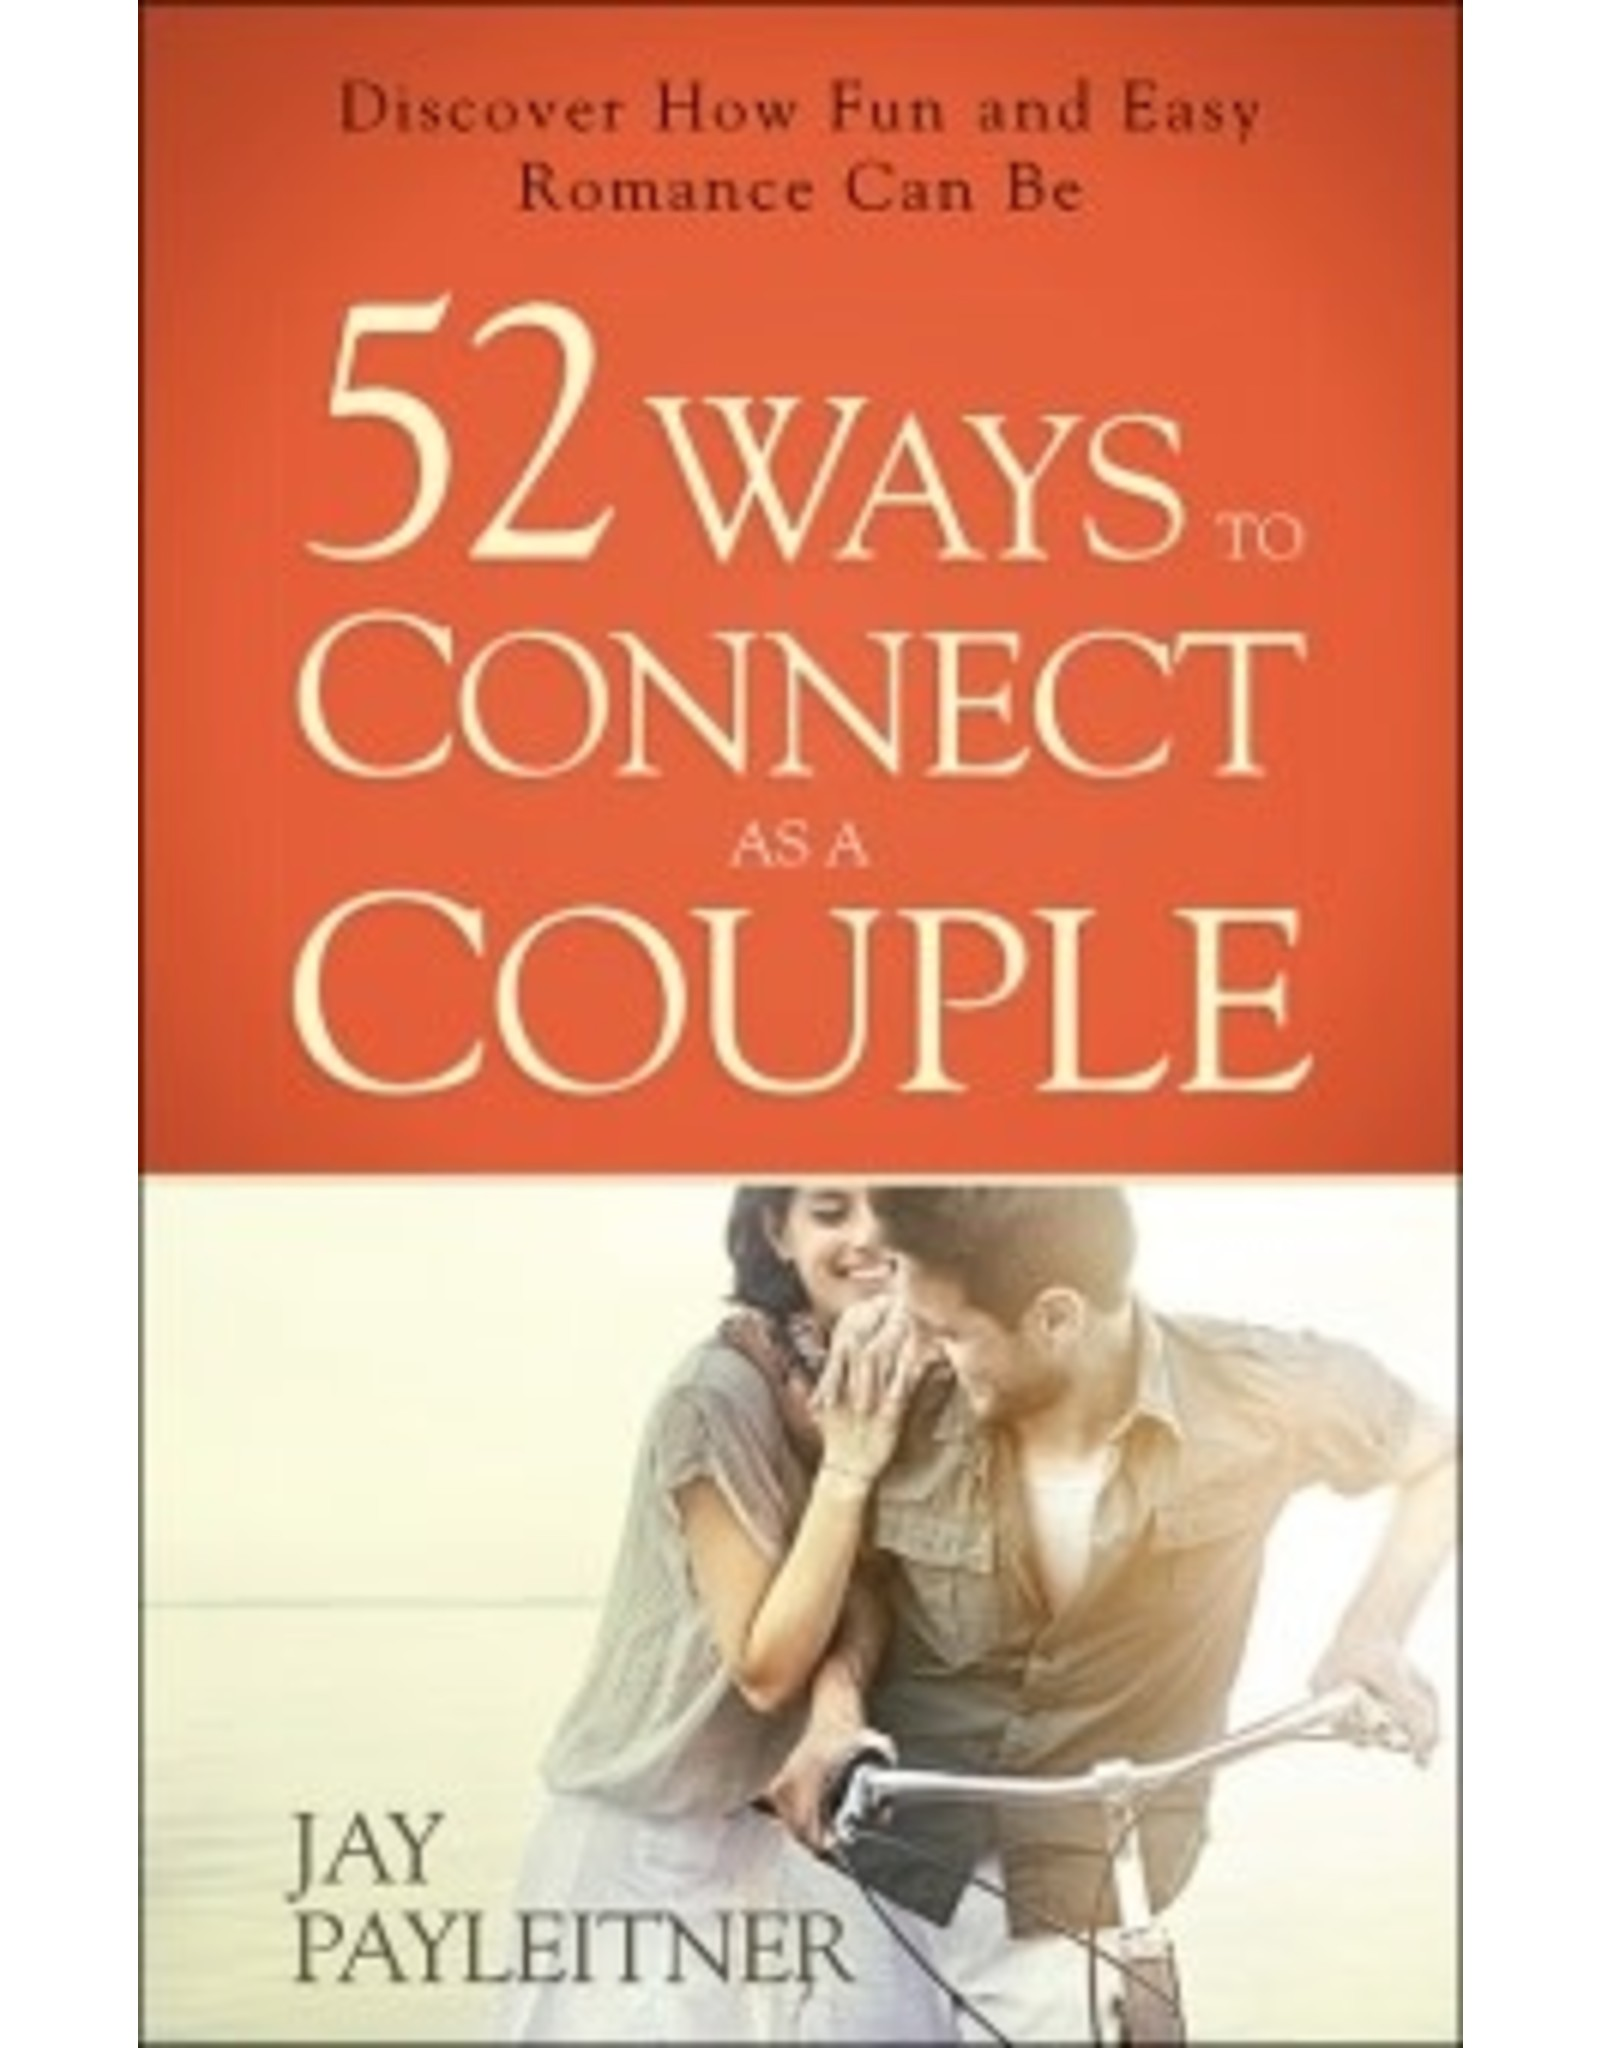 Payleitner 52 Ways to Connect as a Couple